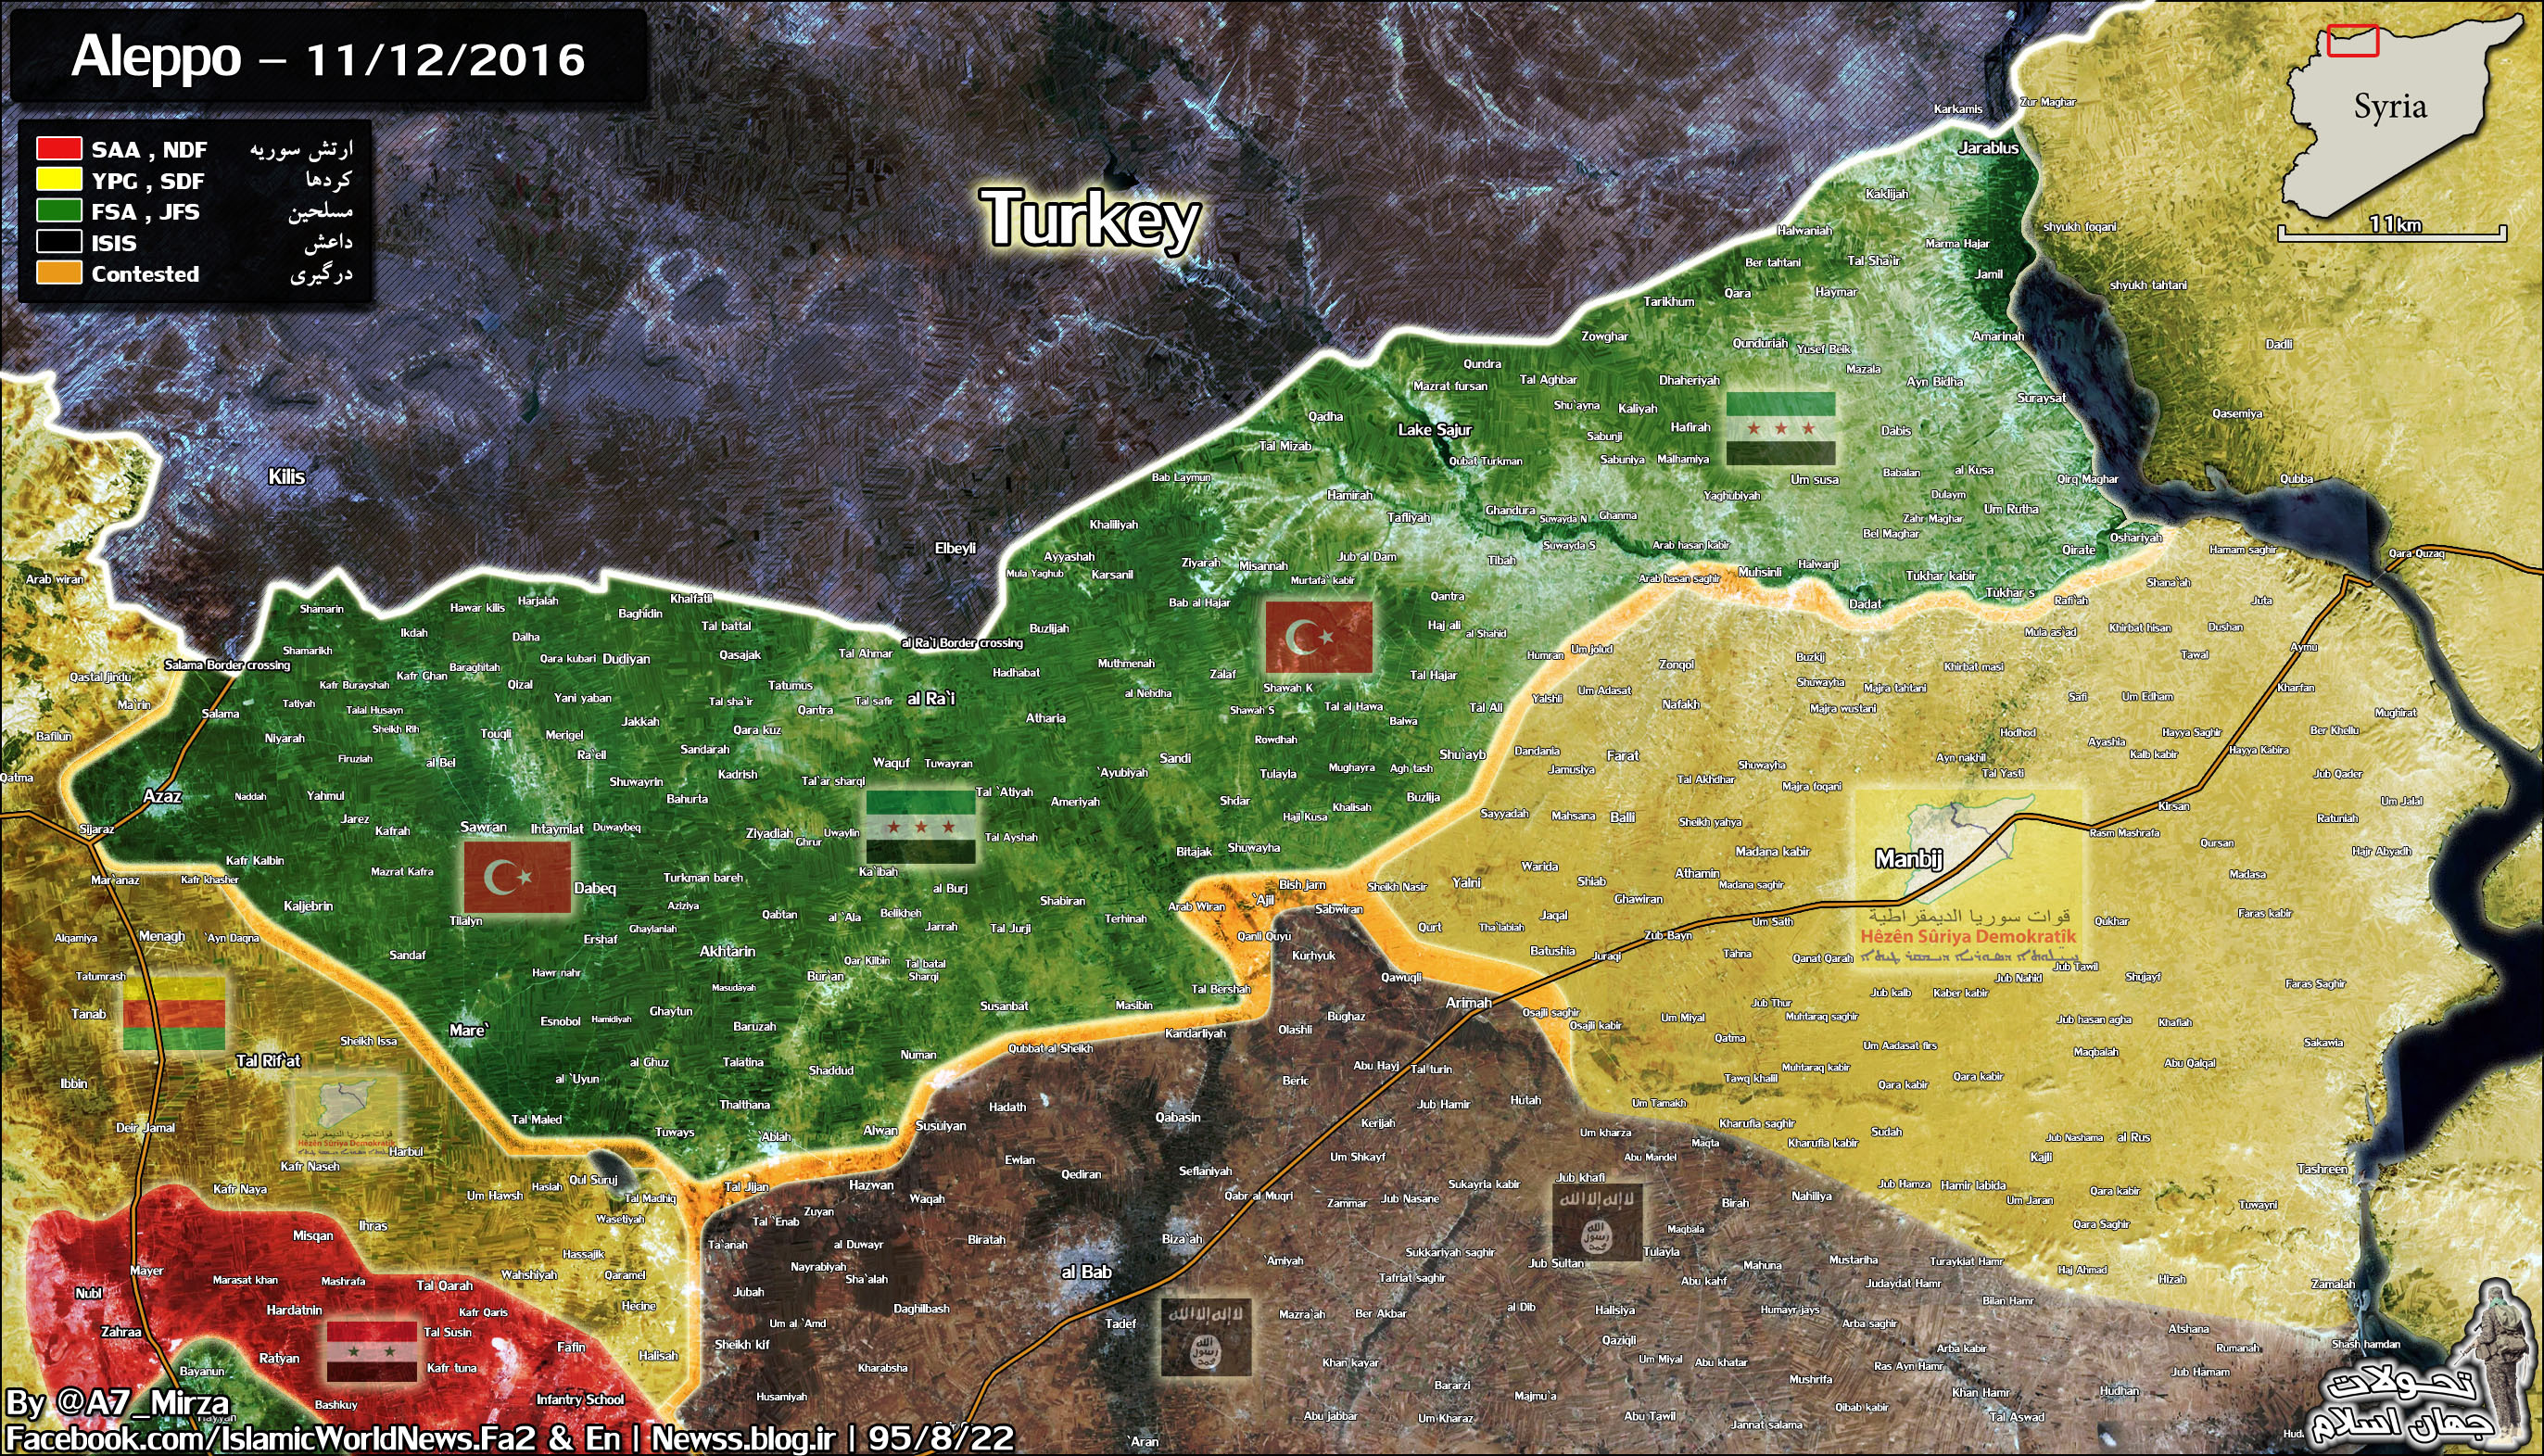 Turkey Supplies Its Proxies in Northern Aleppo with MANPADs (Photo, Map)